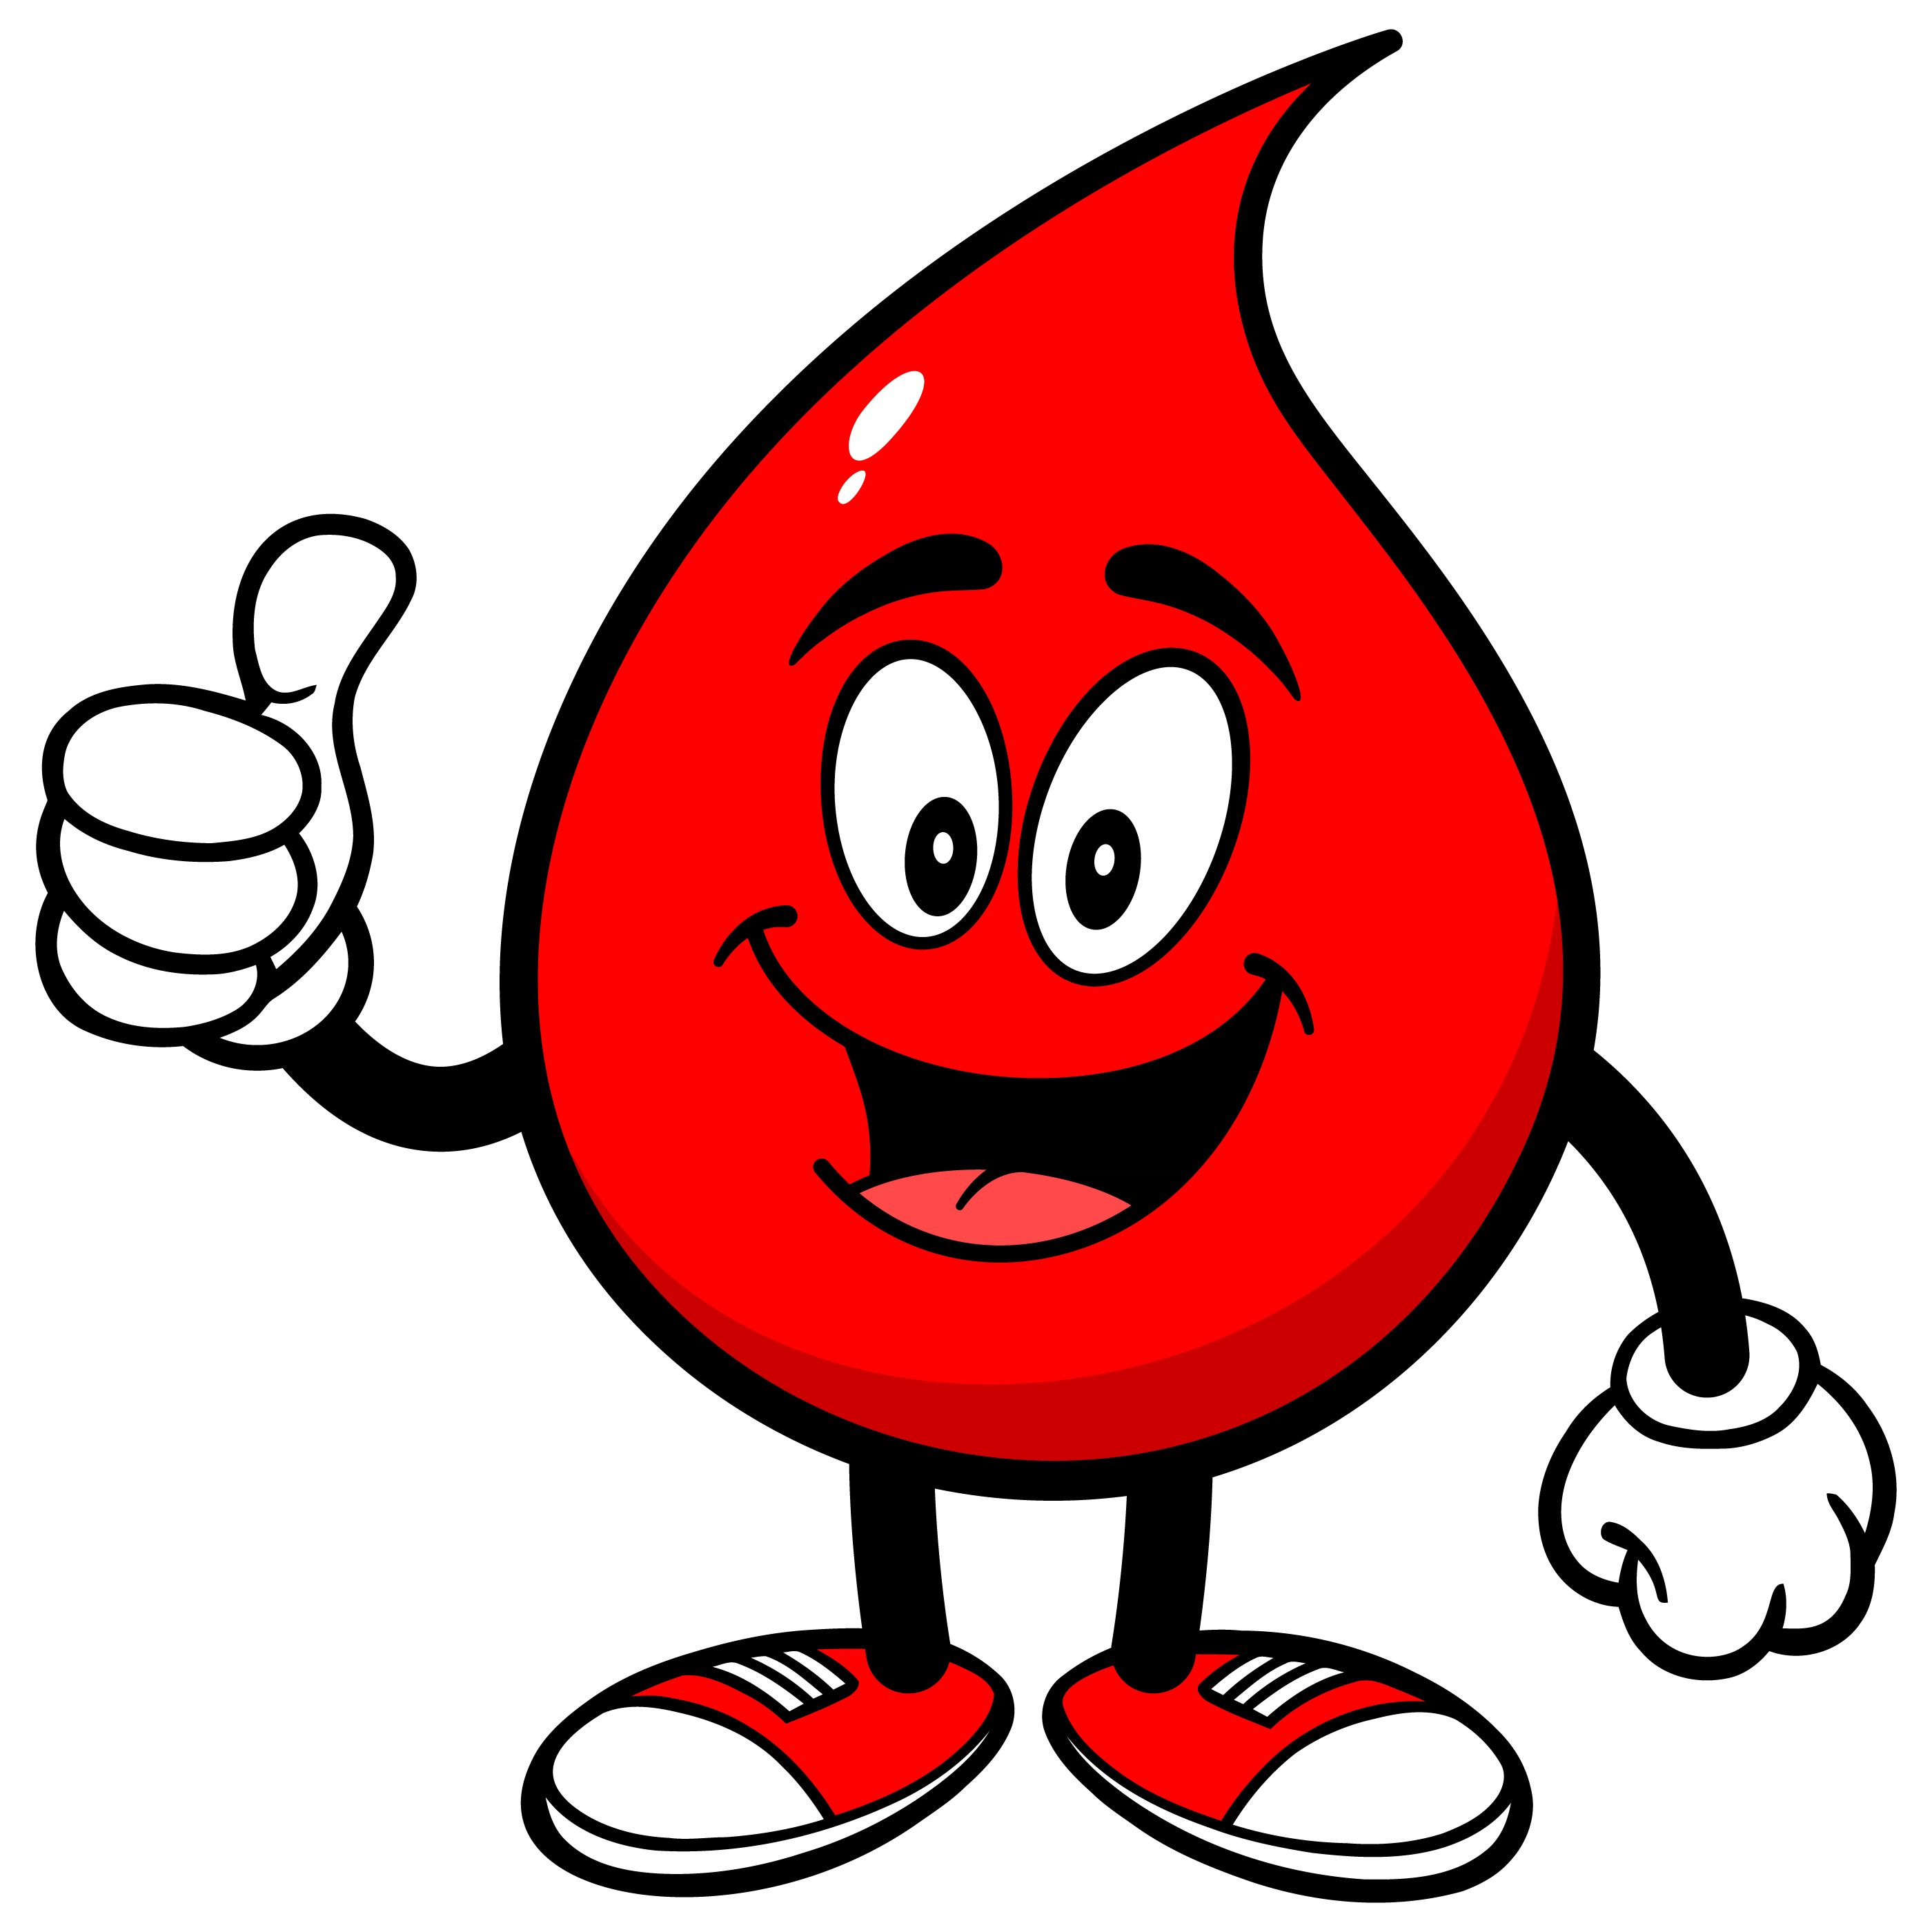 ALL ABOUT BLOOD! Some fun facts about blood: 1) 71% of all